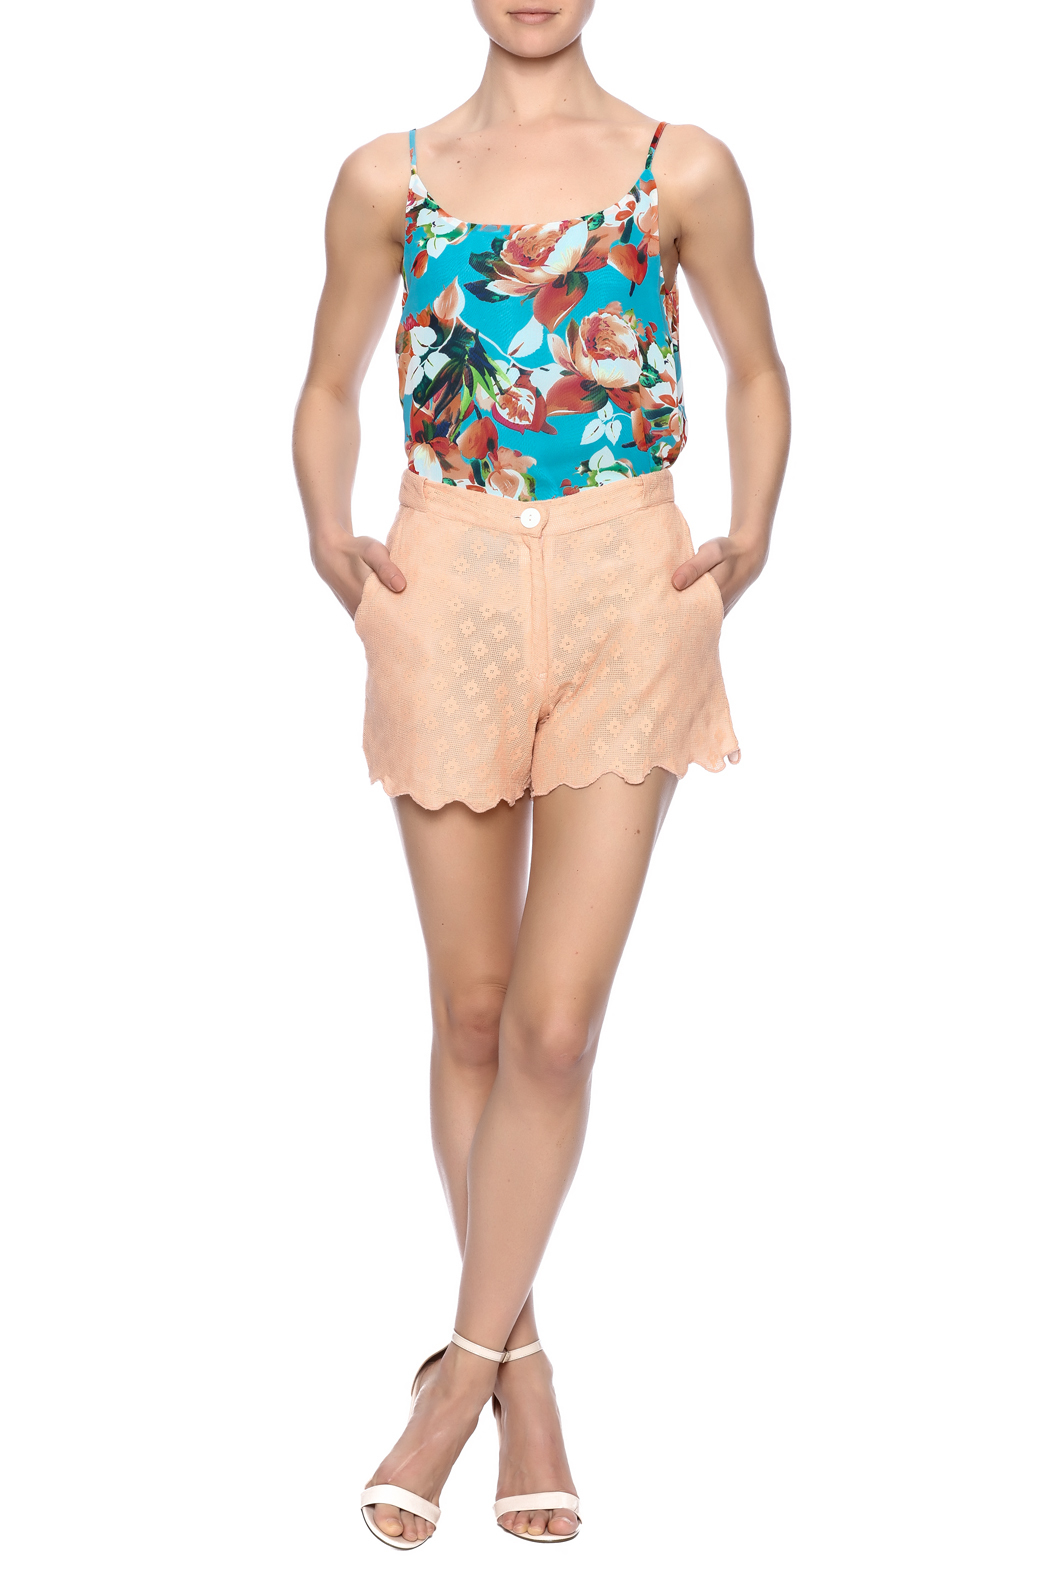 Z&L Europe Peach Lace Shorts - Front Full Image